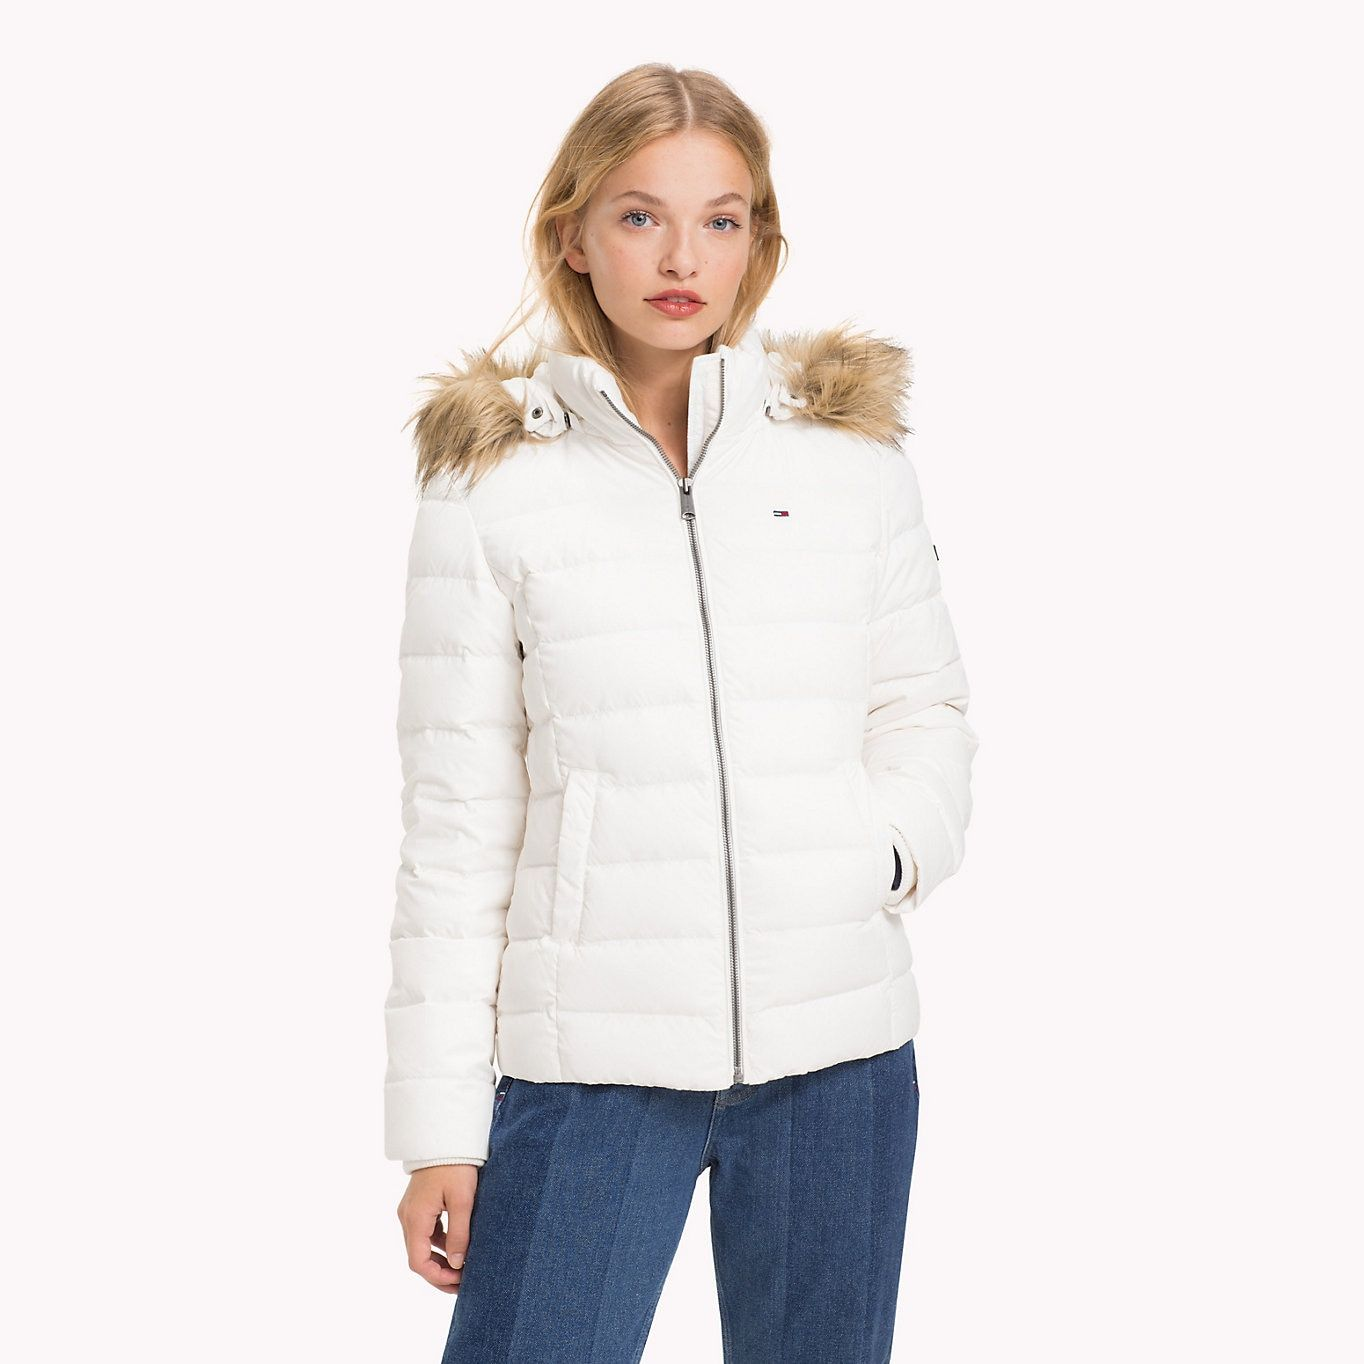 Tommy Jeans Sustainable Padded Down Jacket Snow White Tommy Jeans Women Main Image Womenswear Fashion Fashion Jackets For Women [ 1364 x 1364 Pixel ]